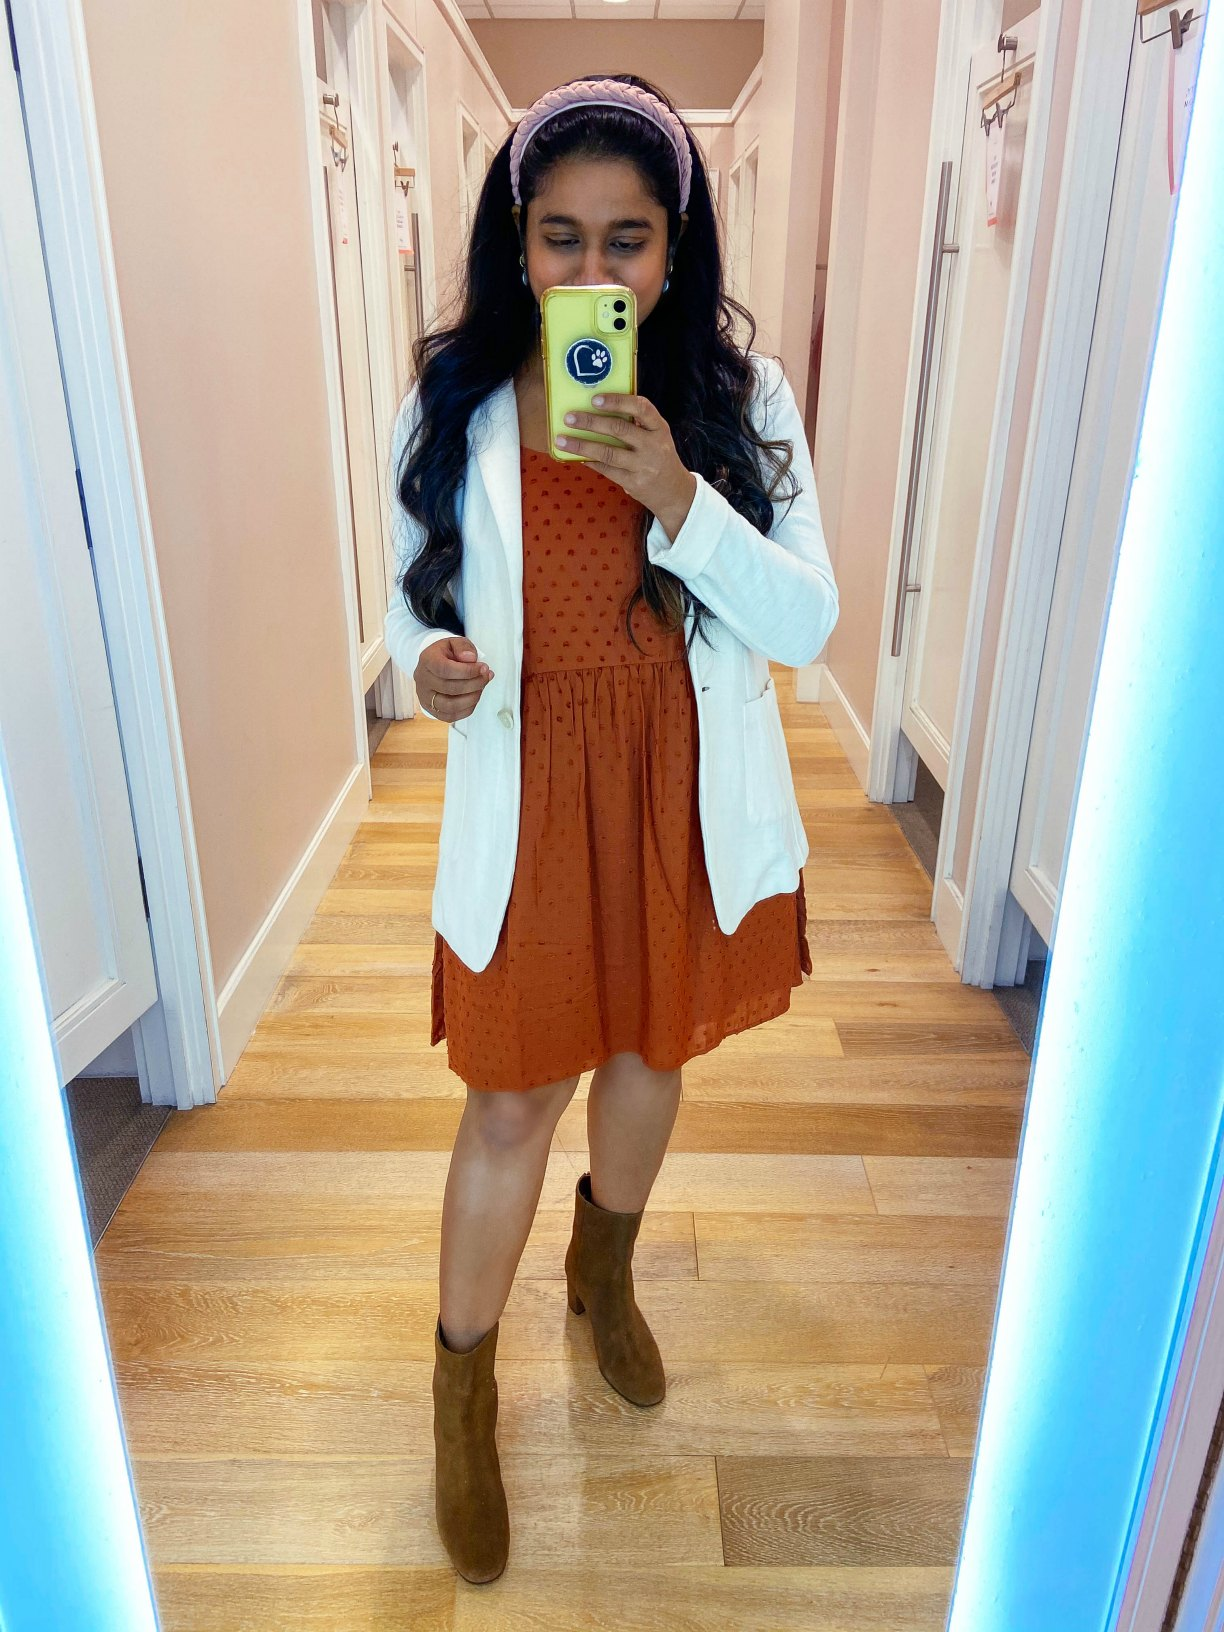 Fall WFH Outfits- Wearing Clip Strappy Swing Dress, Soft Knit blazer in white, Velvet headband, J,crew suede Ankle boots | Fall Clothing by popular Maryland modest fashion blog, Dreaming Loud: image of a woman wearing a Loft Clip Strappy Swing Dress, Soft Knit blazer in white, Velvet headband, and J. Crew suede Ankle boots.